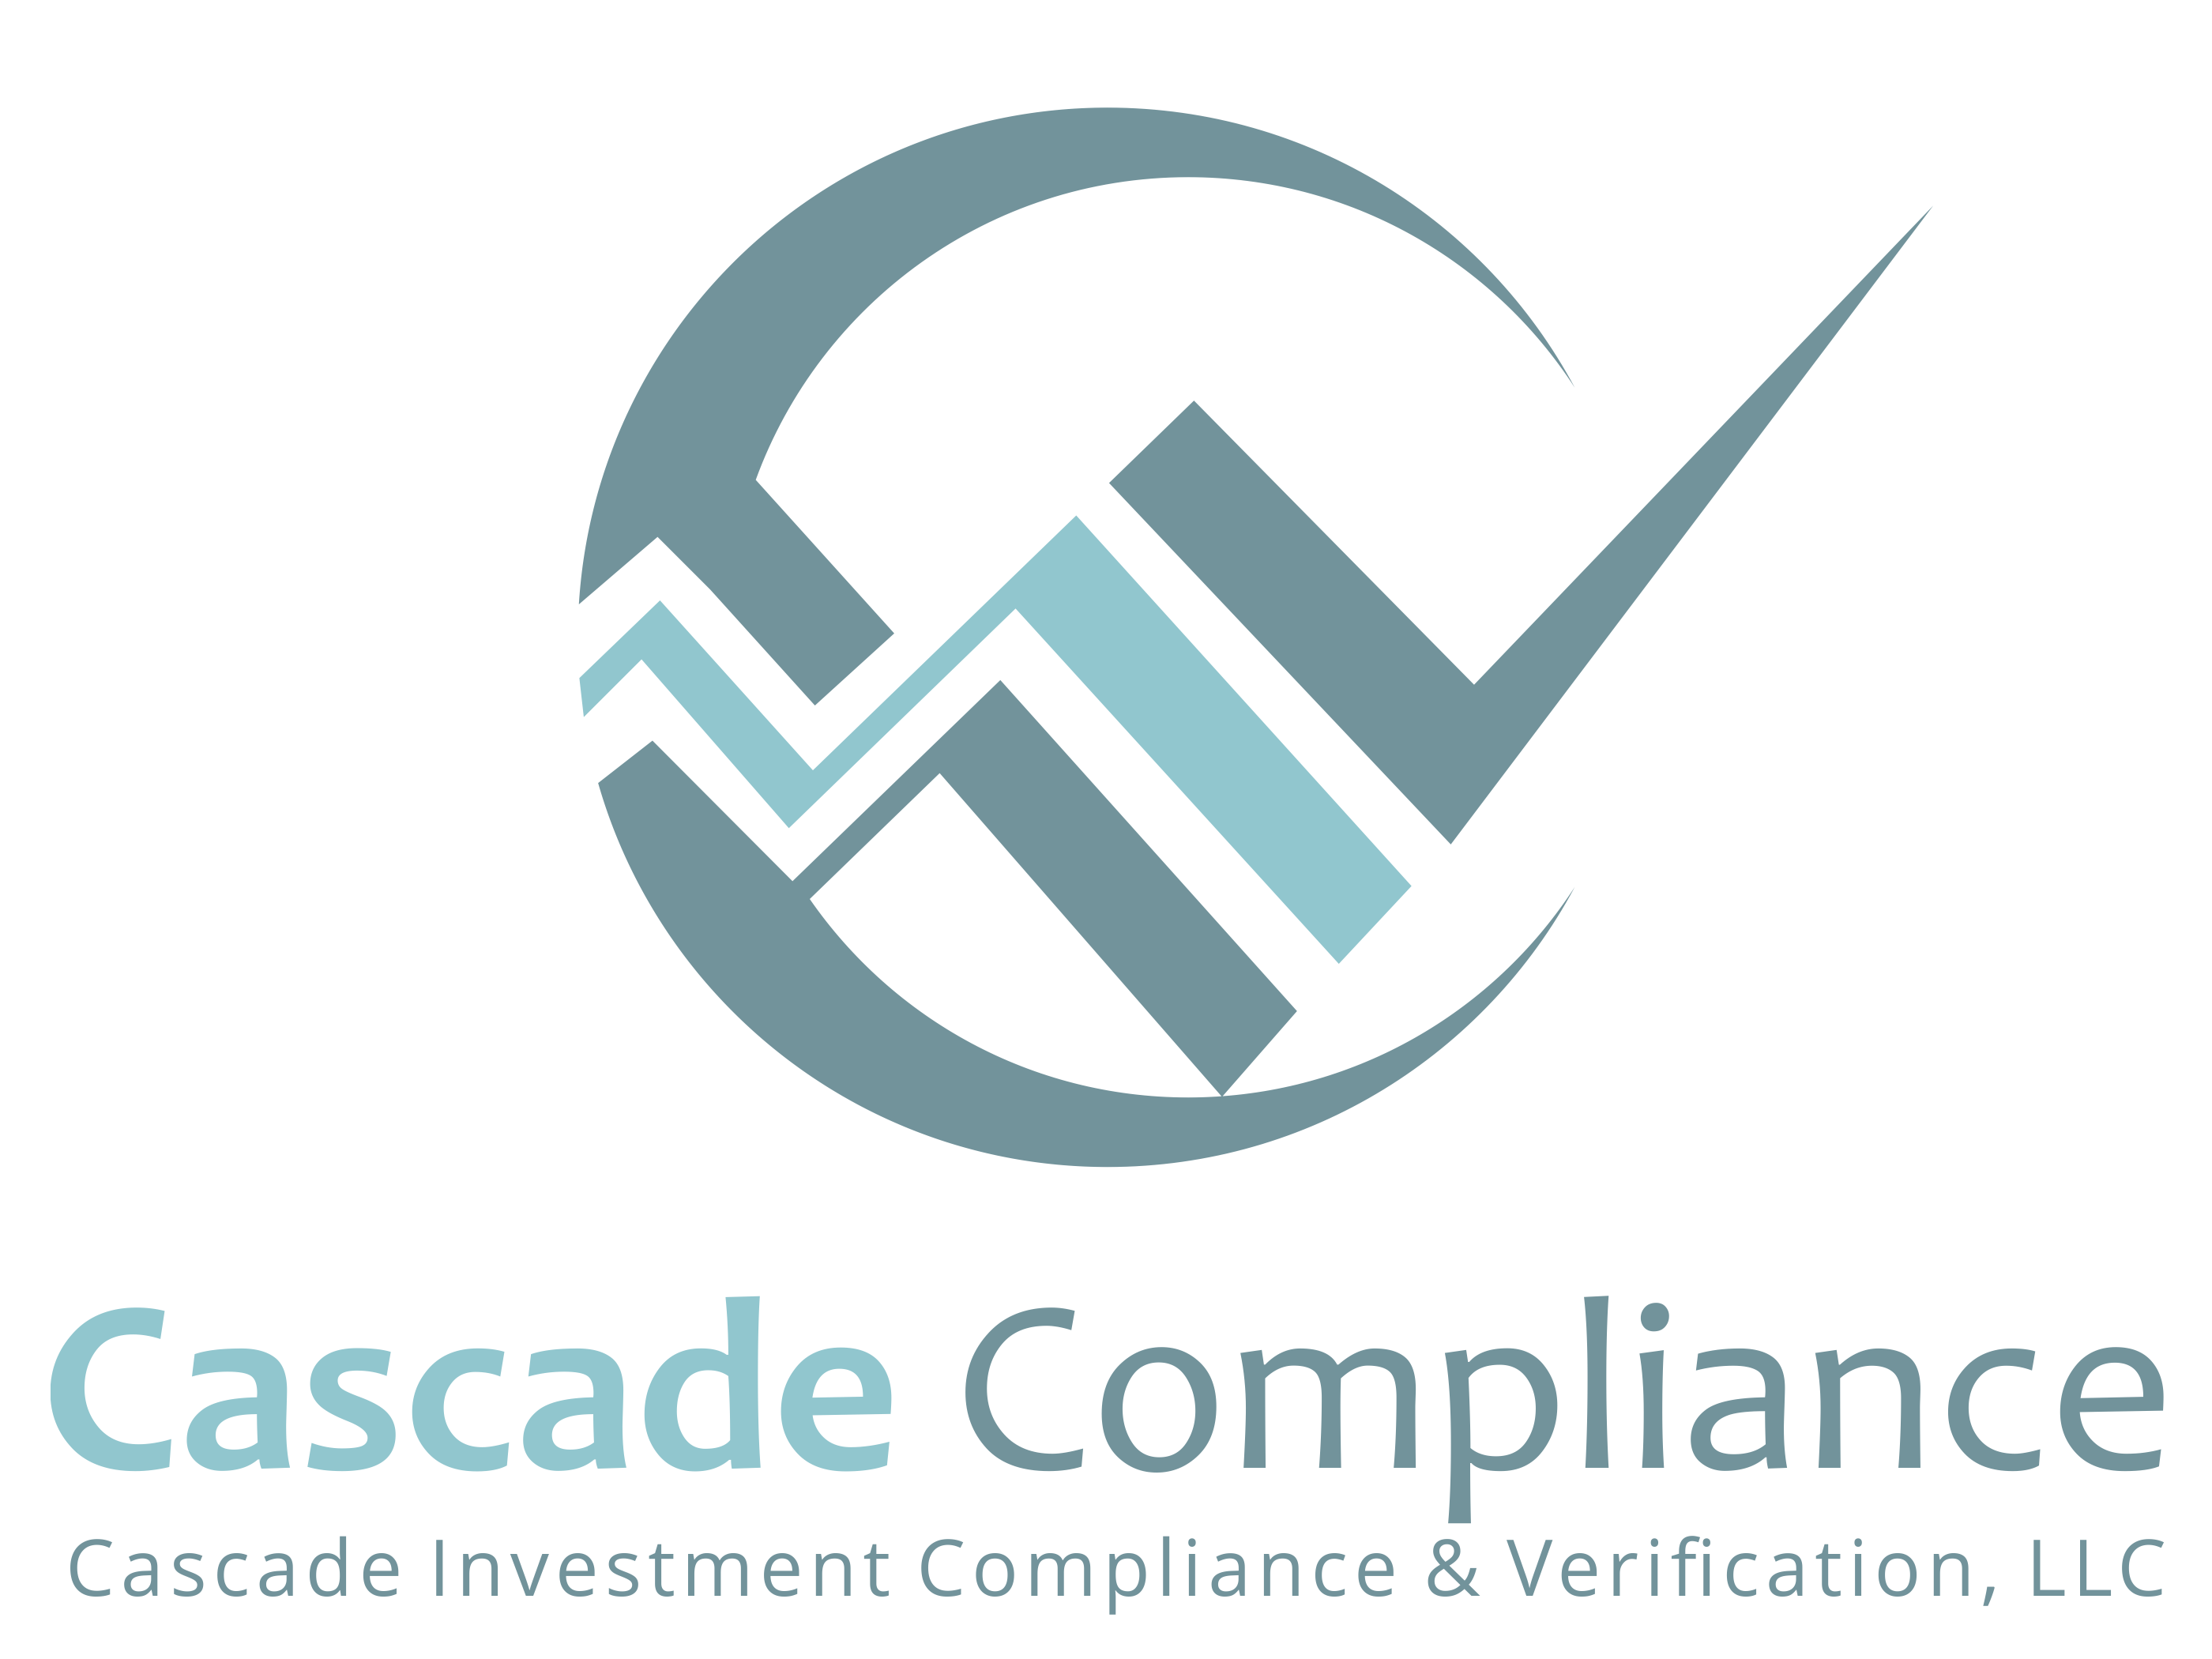 Cascade Investment Compliance & Verification, LLC